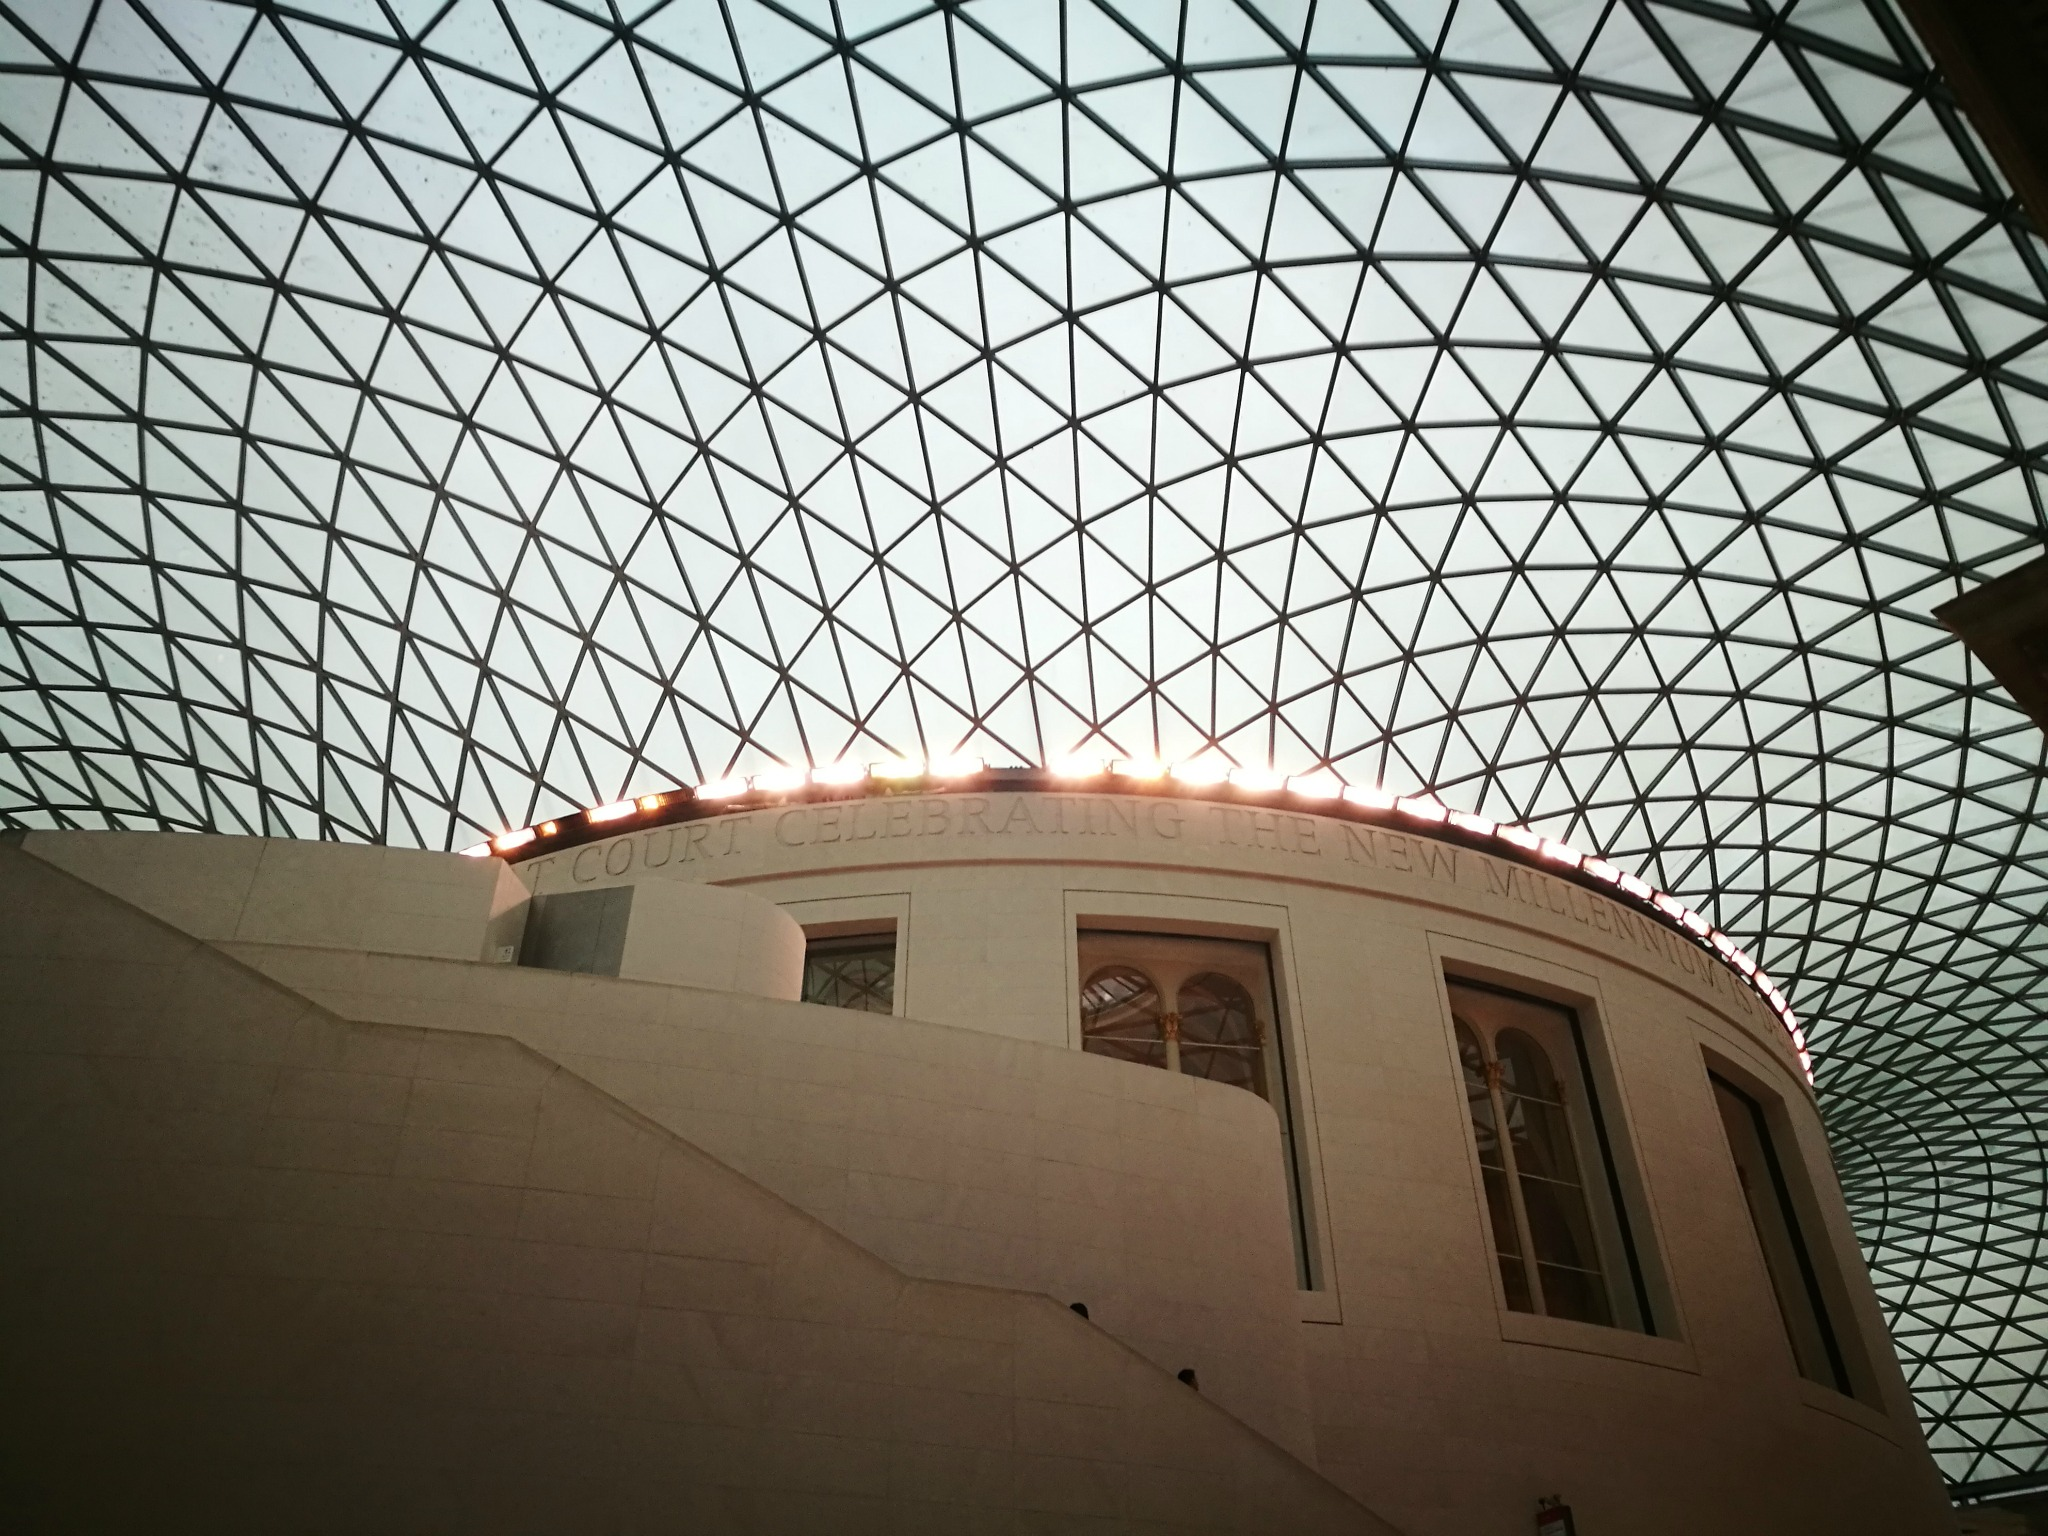 6 Tips for surviving the British Museum